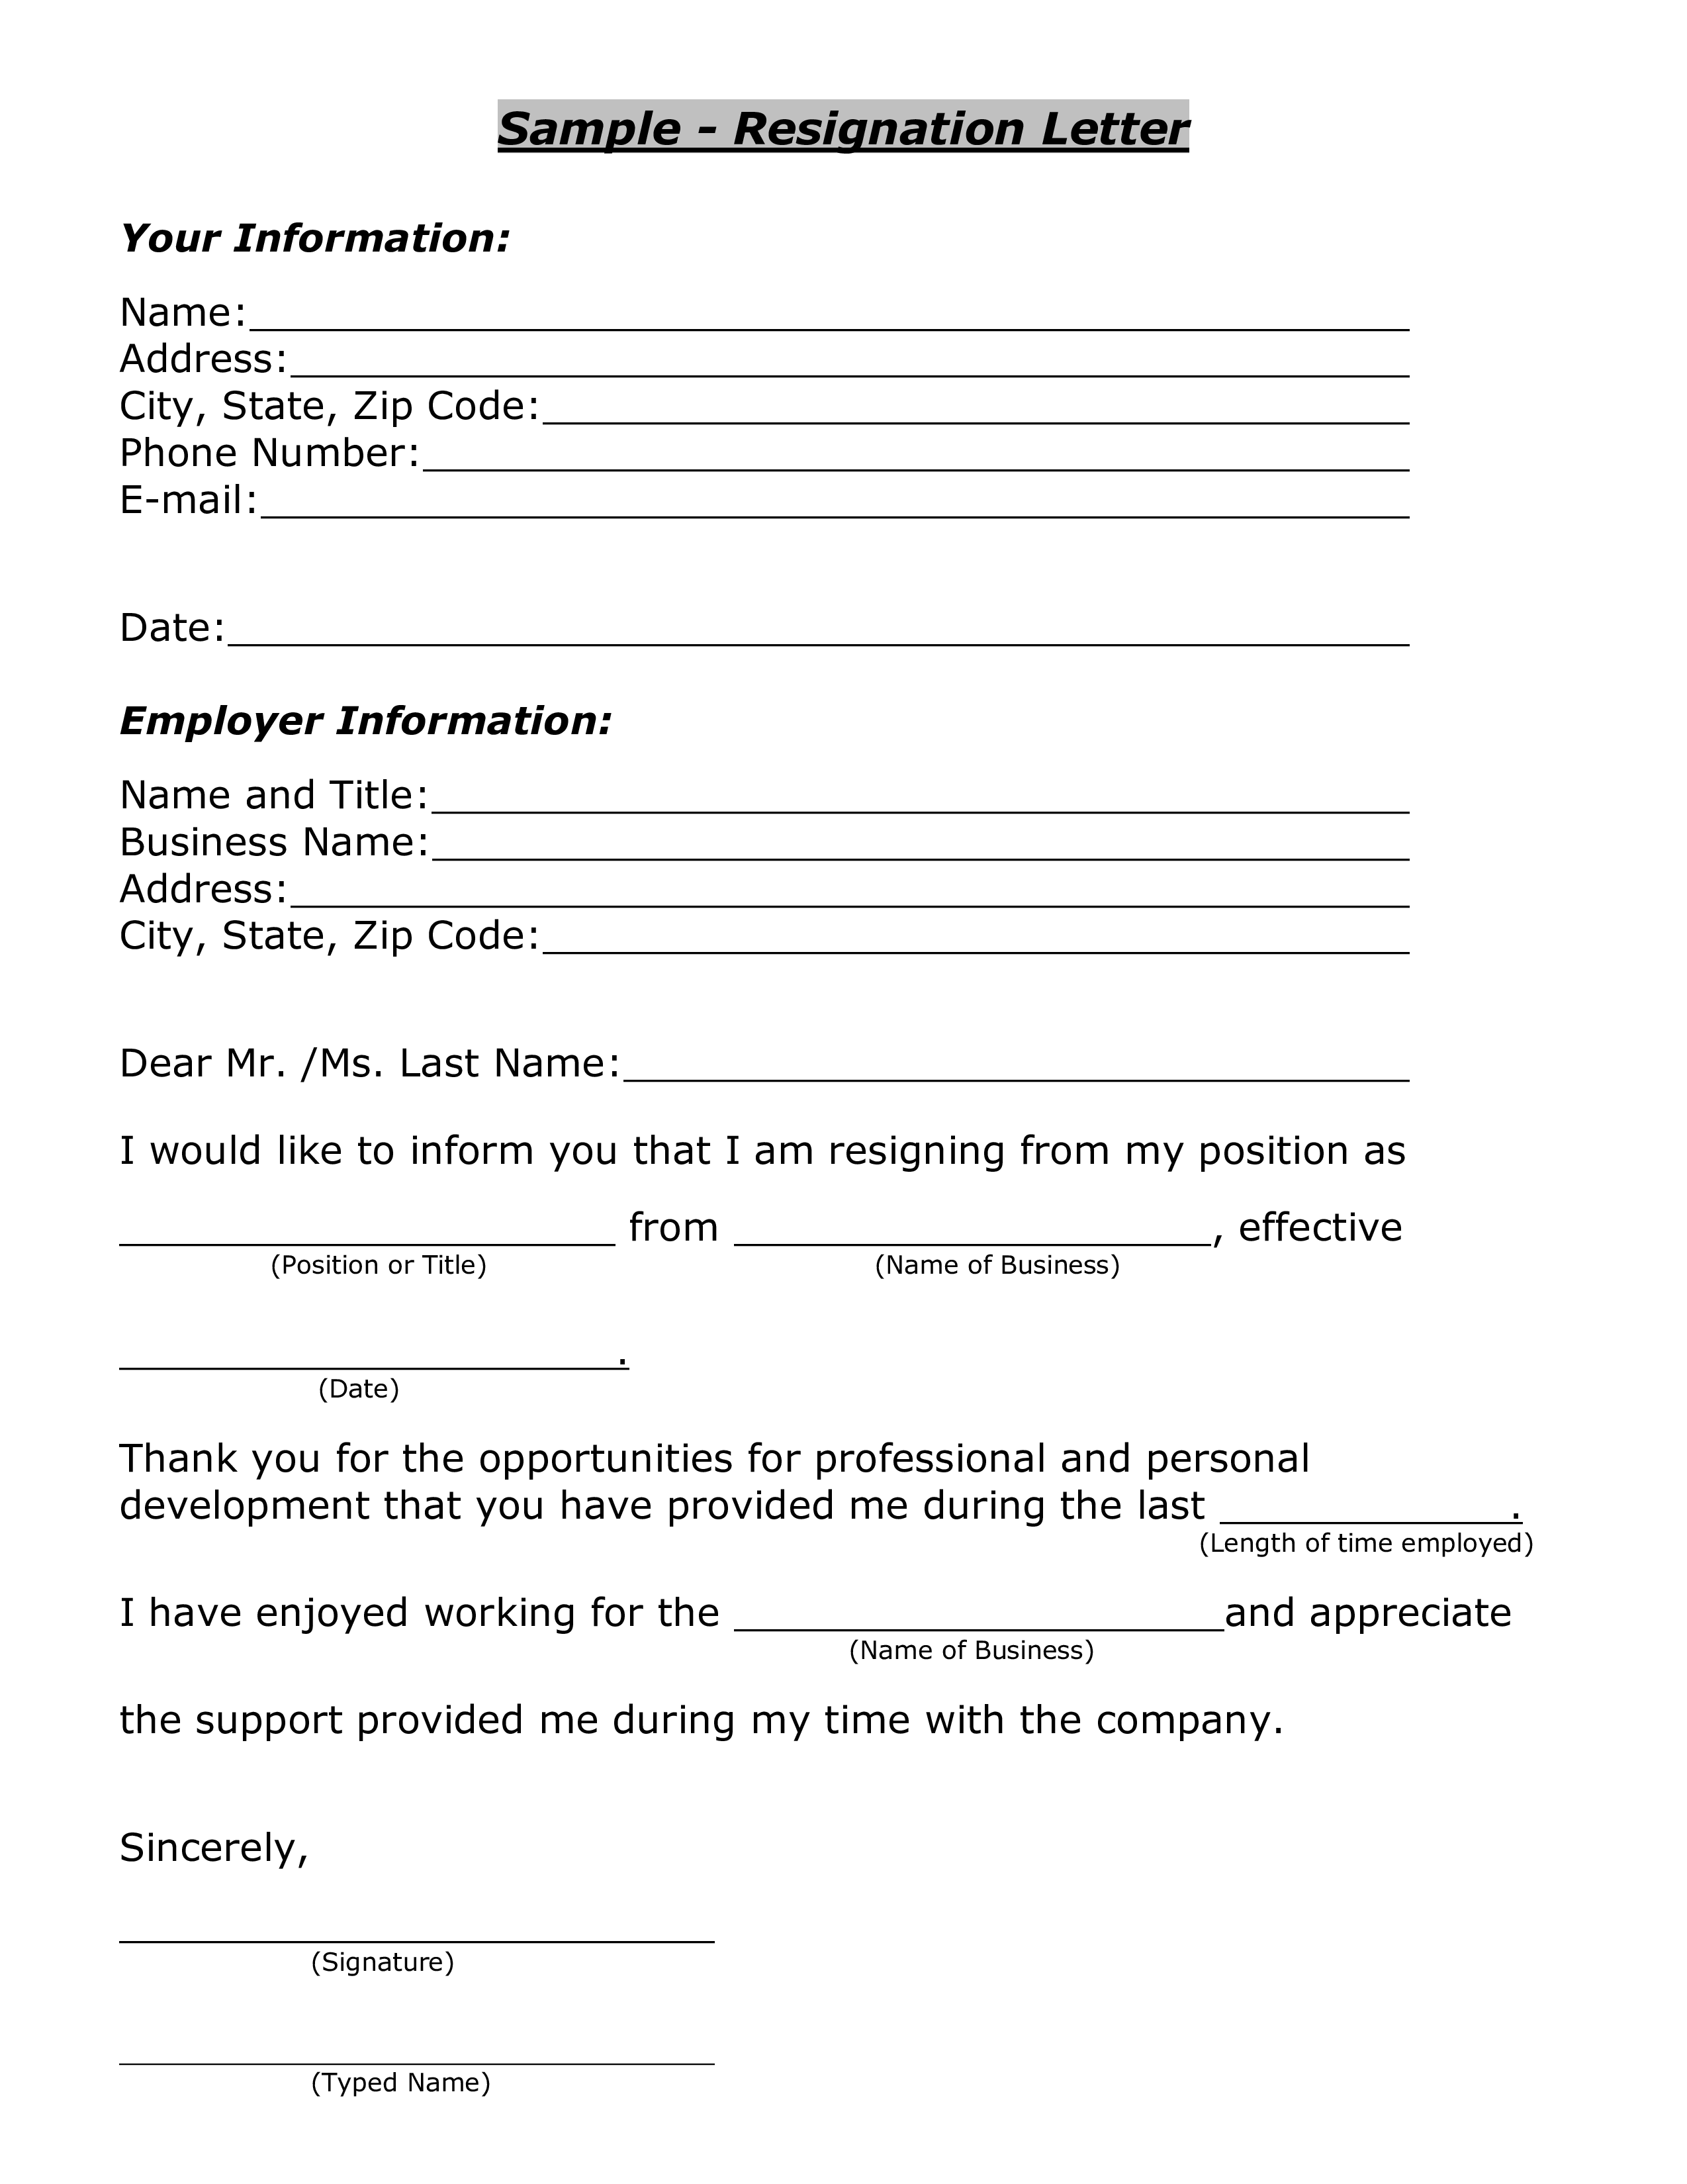 Free Sample Resignation Letter PDF Format | Templates at ...